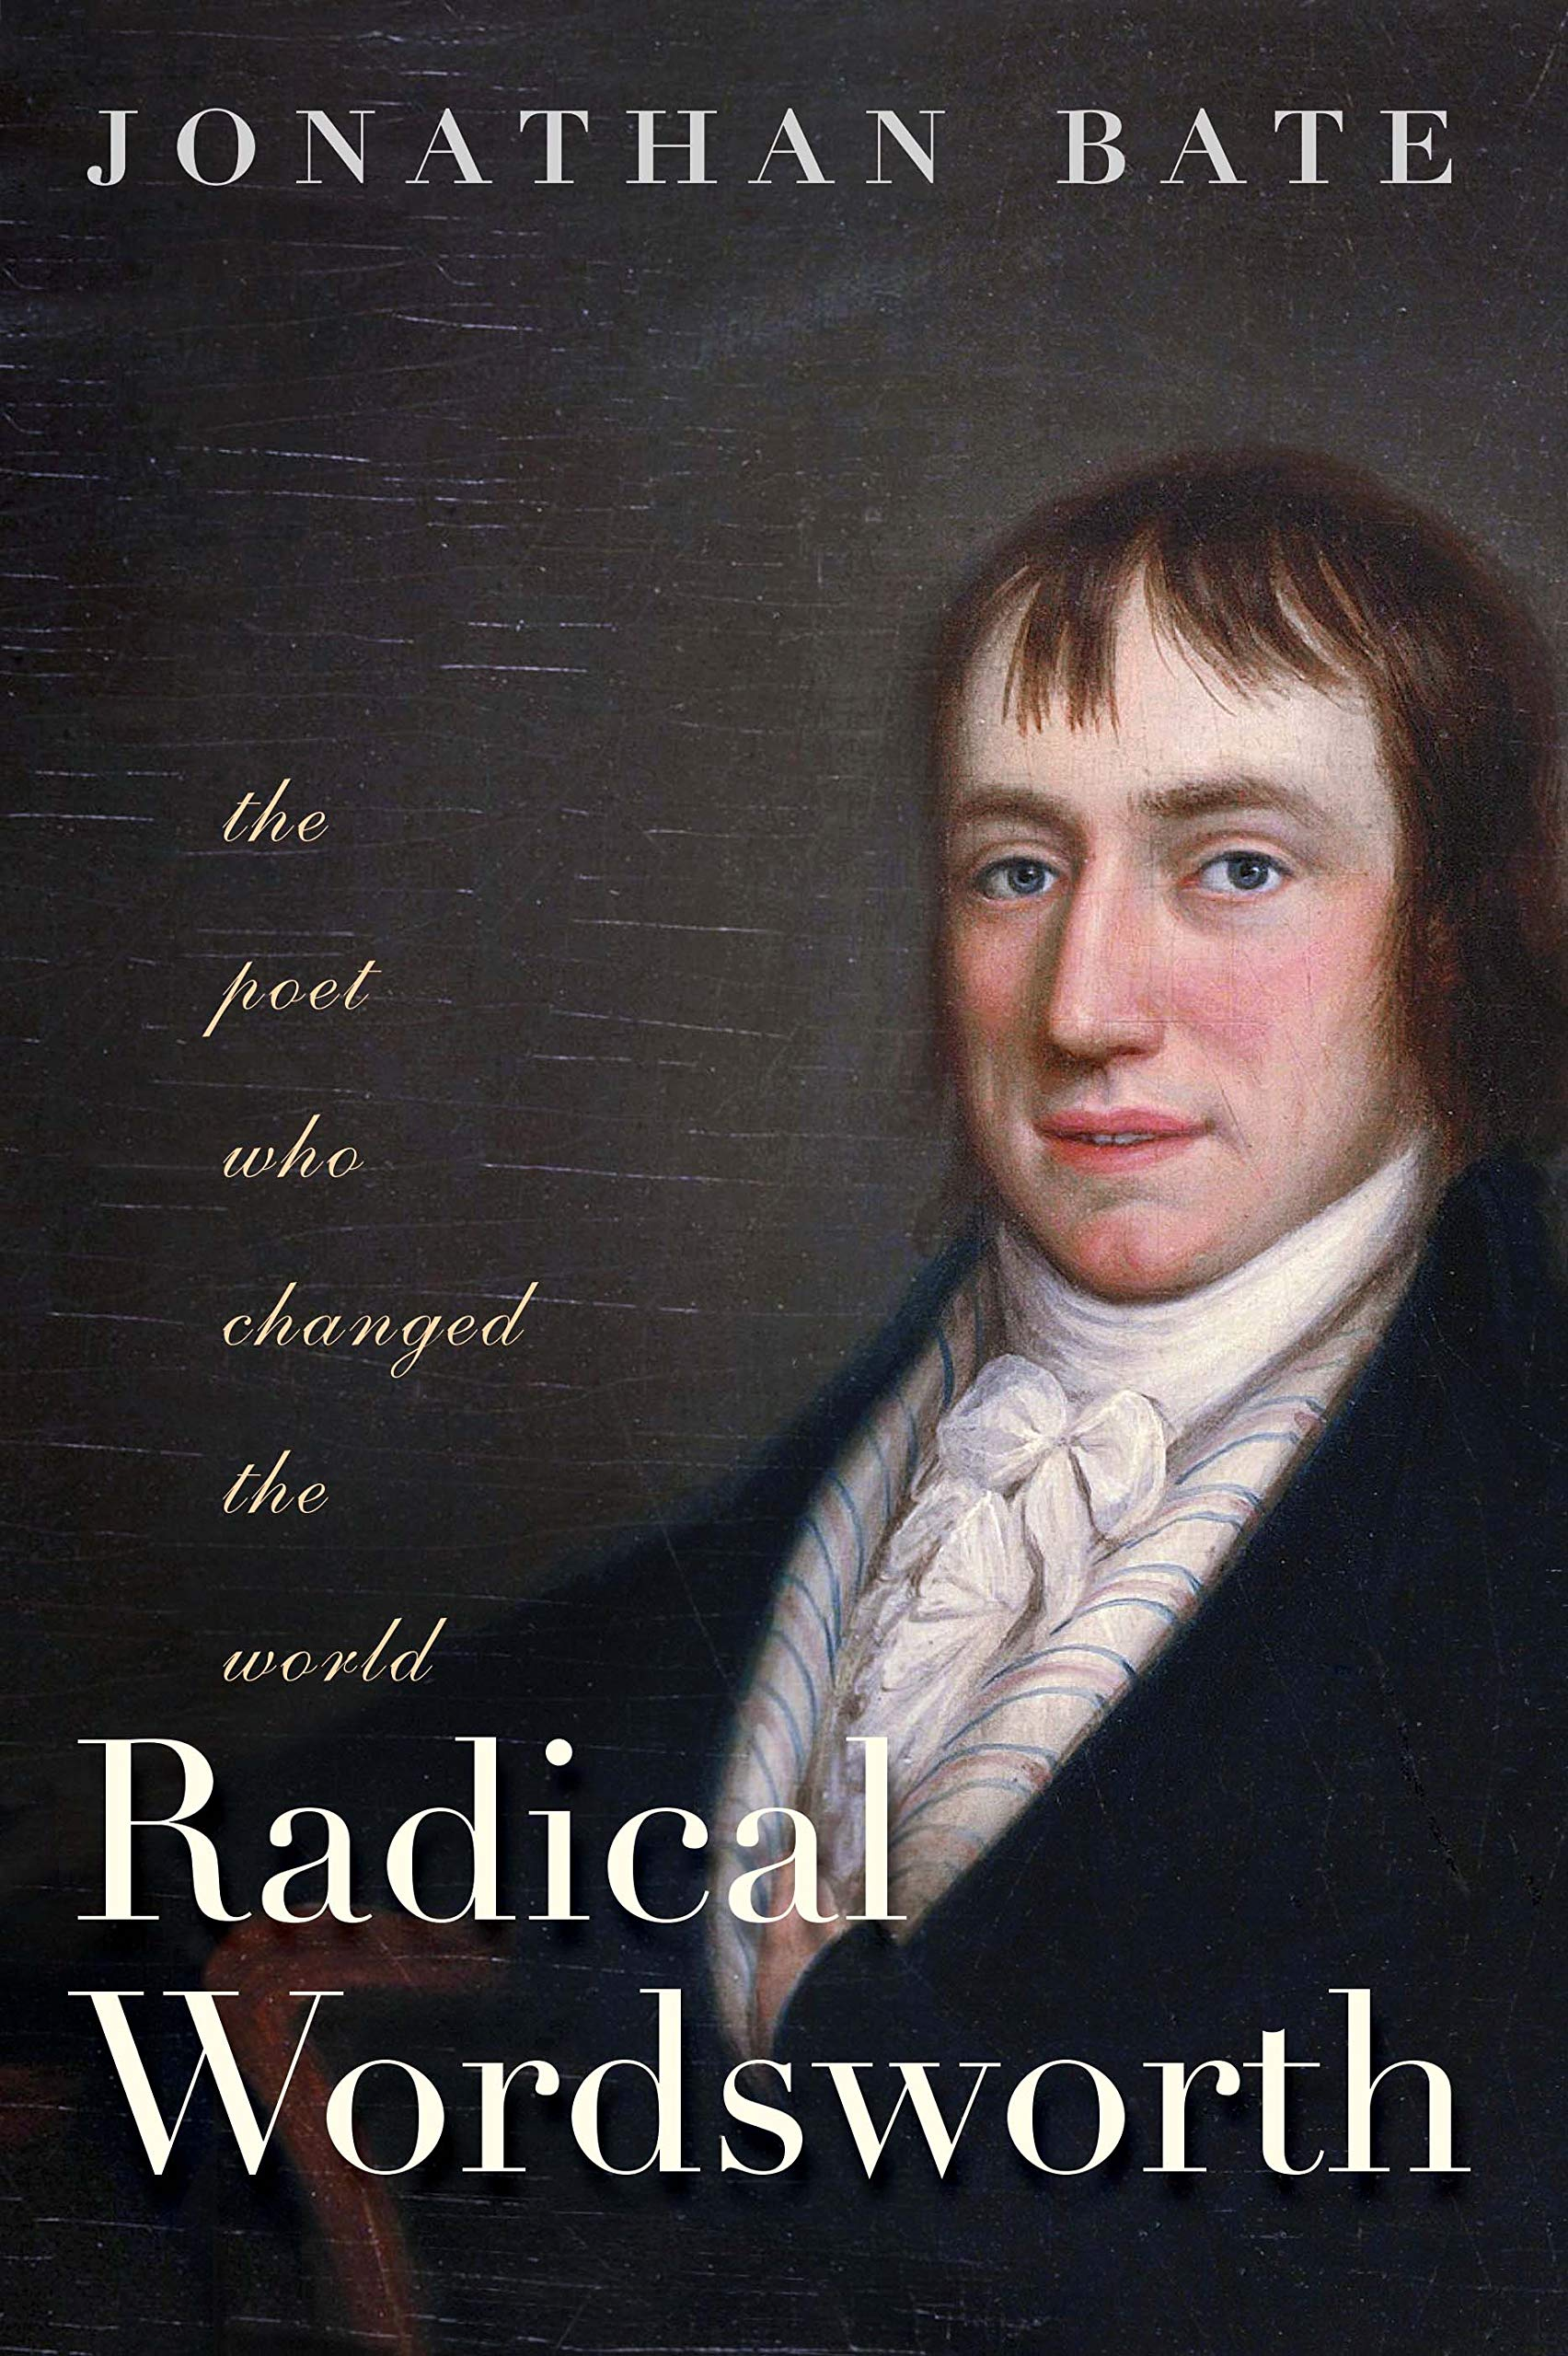 Radical Wordsworth: The Poet Who Changed the World